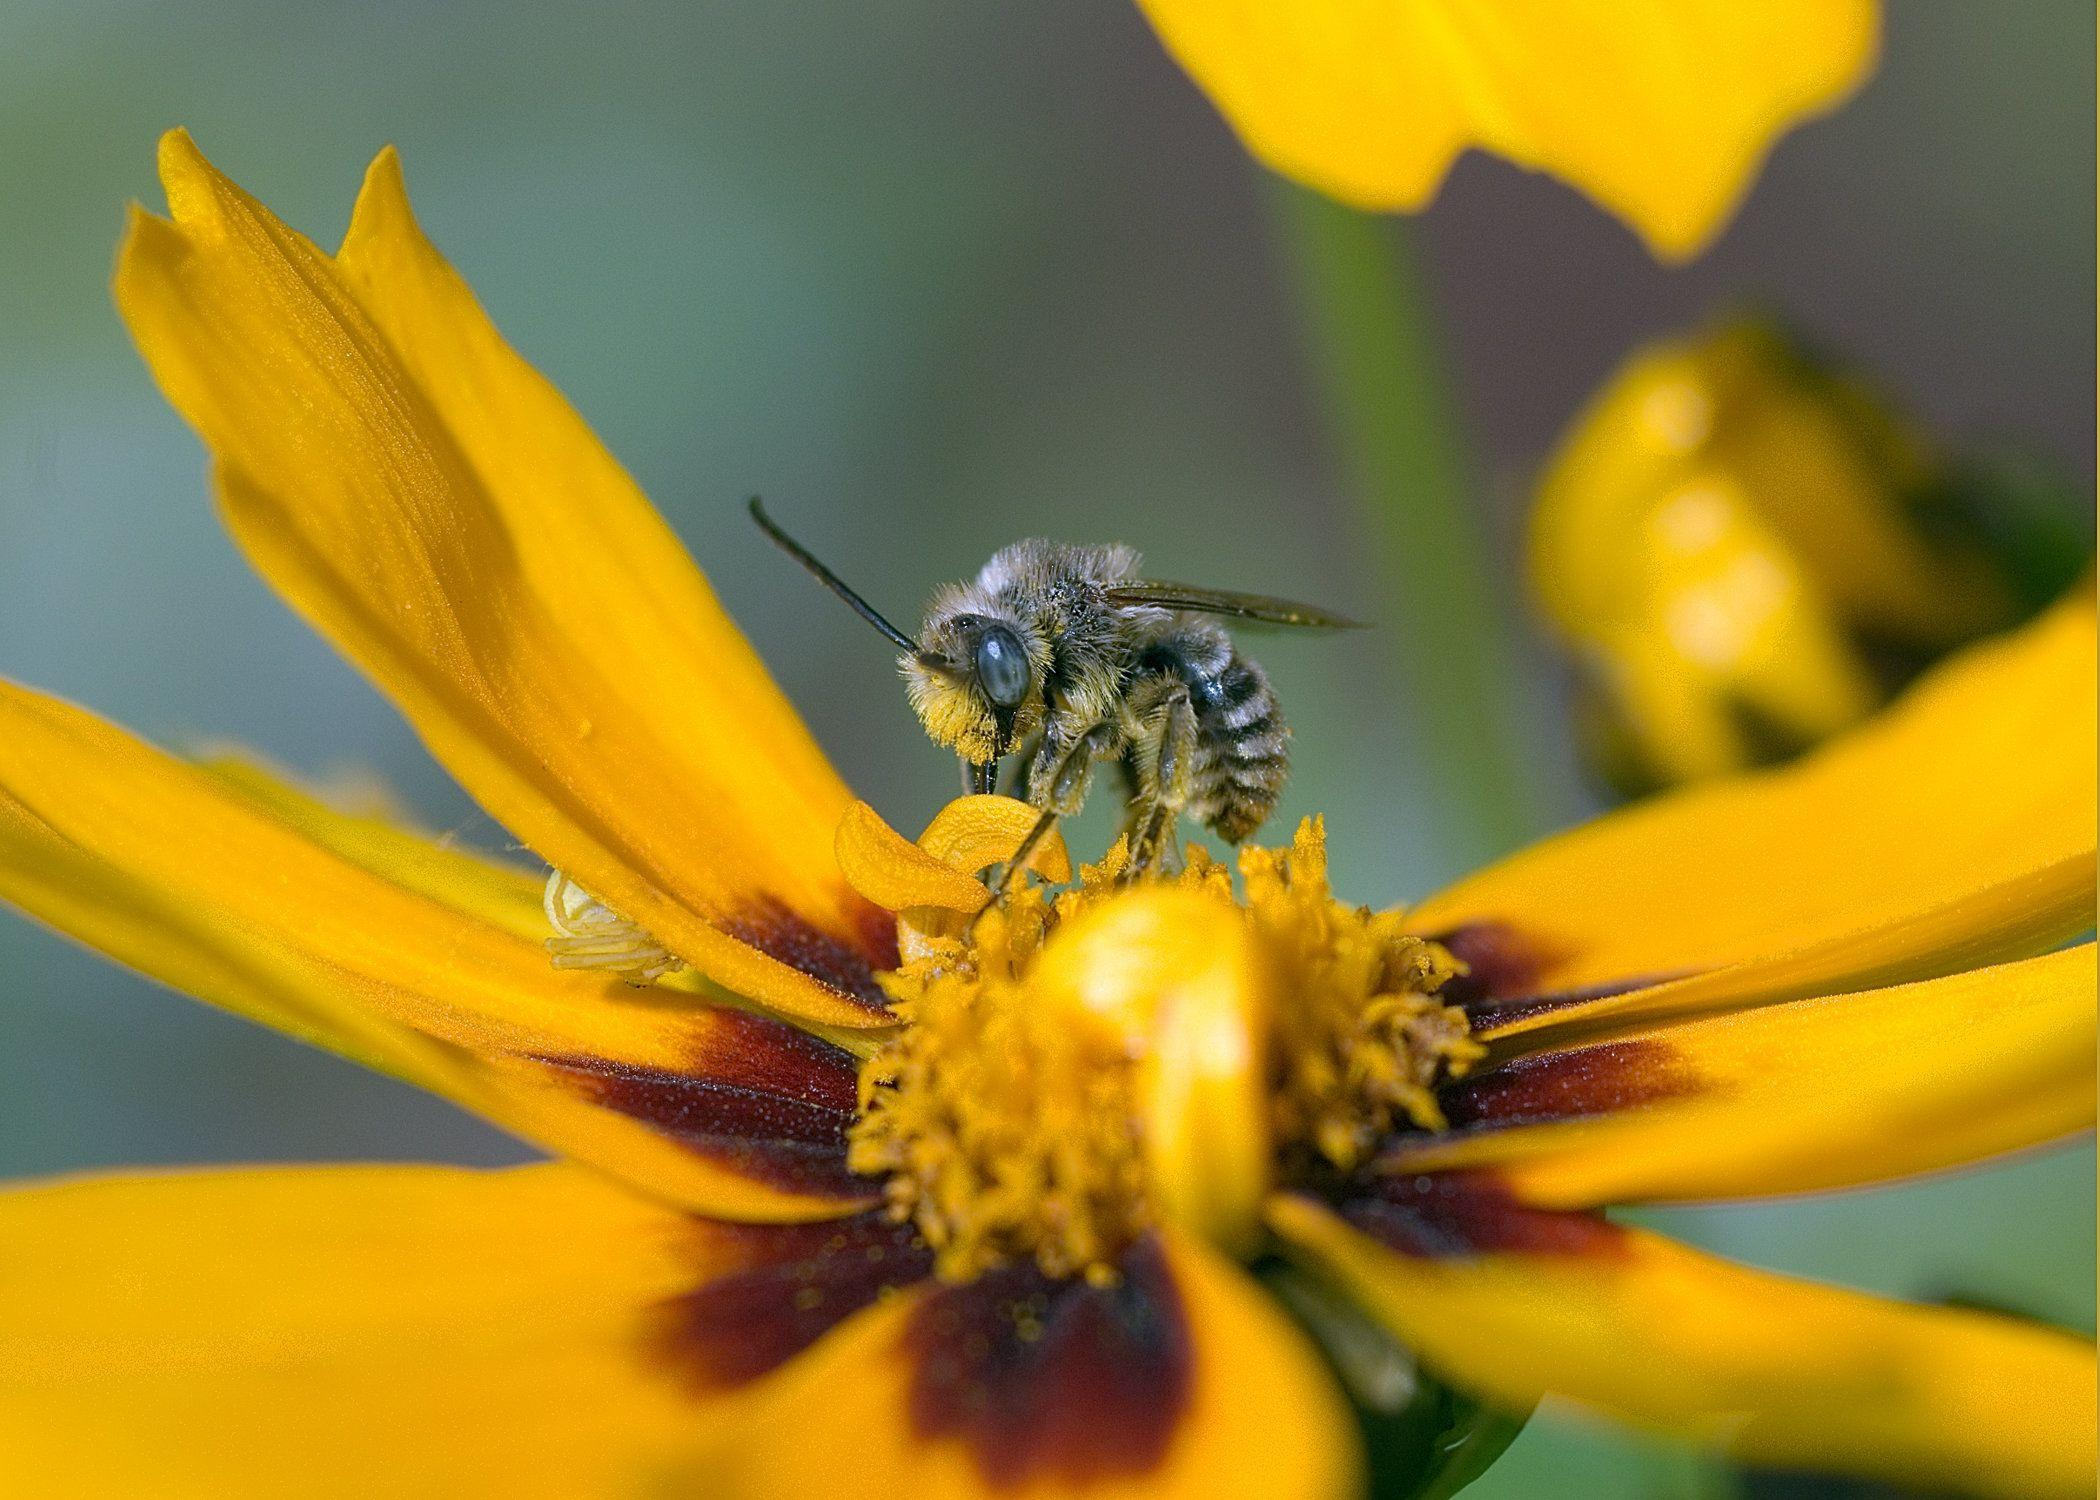 This small sweat bee busily forages away in the orange flowers.